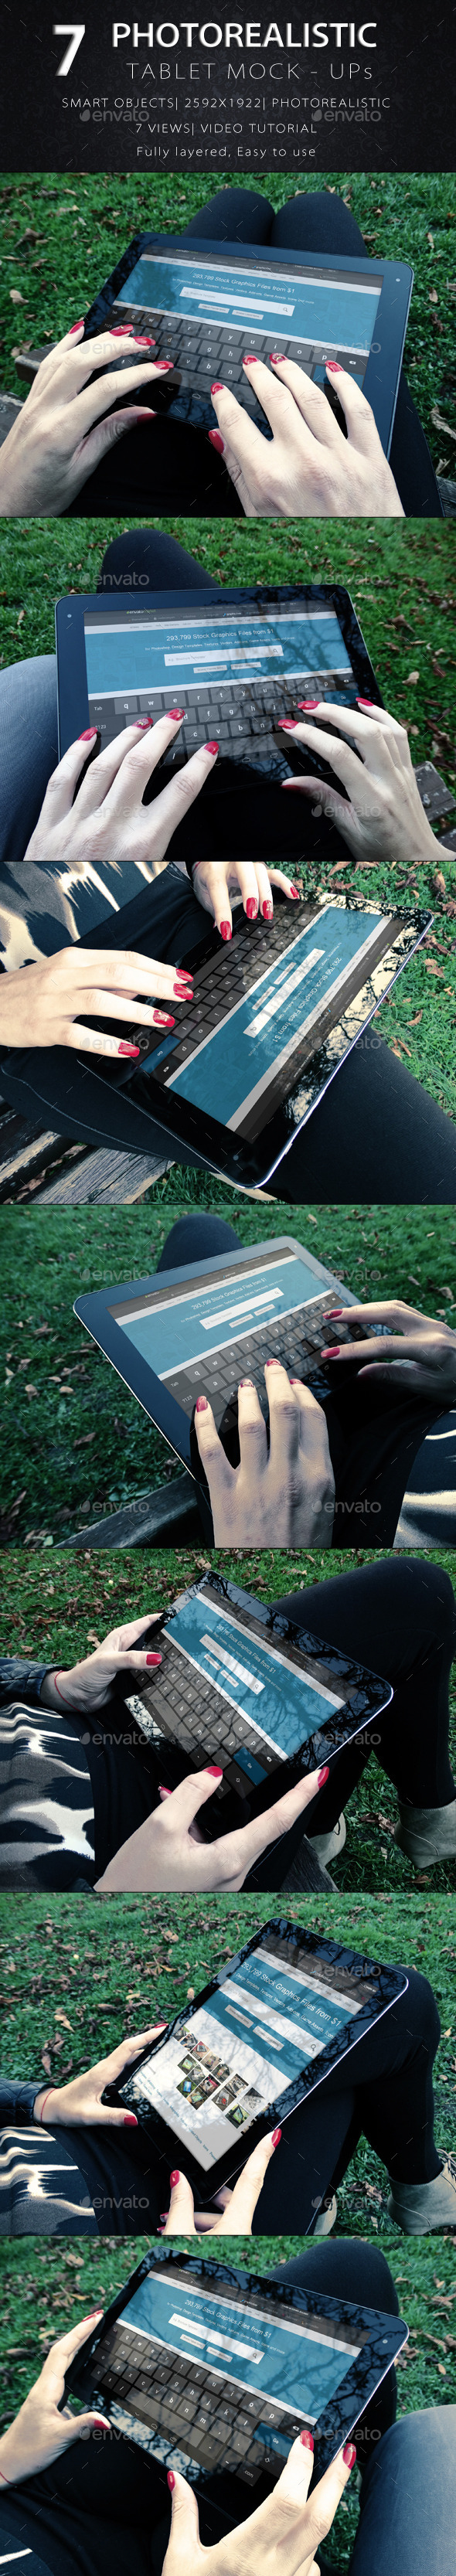 Photorealistic Tablet With Female Hands Mock-Up V1 - Product Mock-Ups Graphics